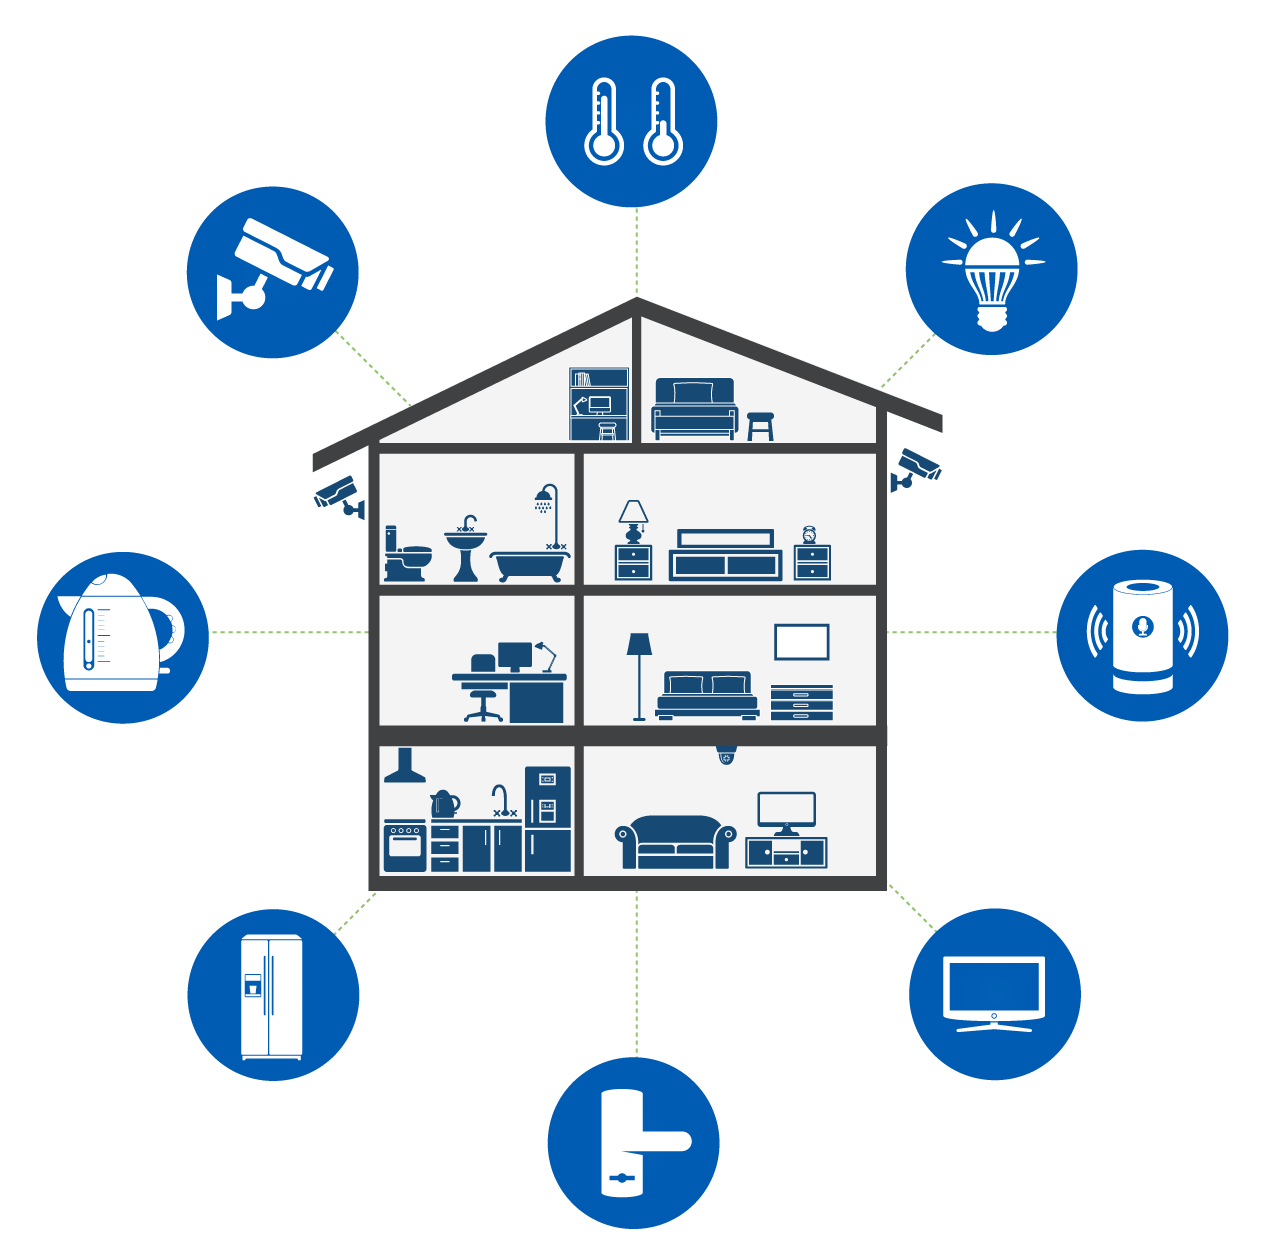 SD-Home - Internet of Things - Smart Home